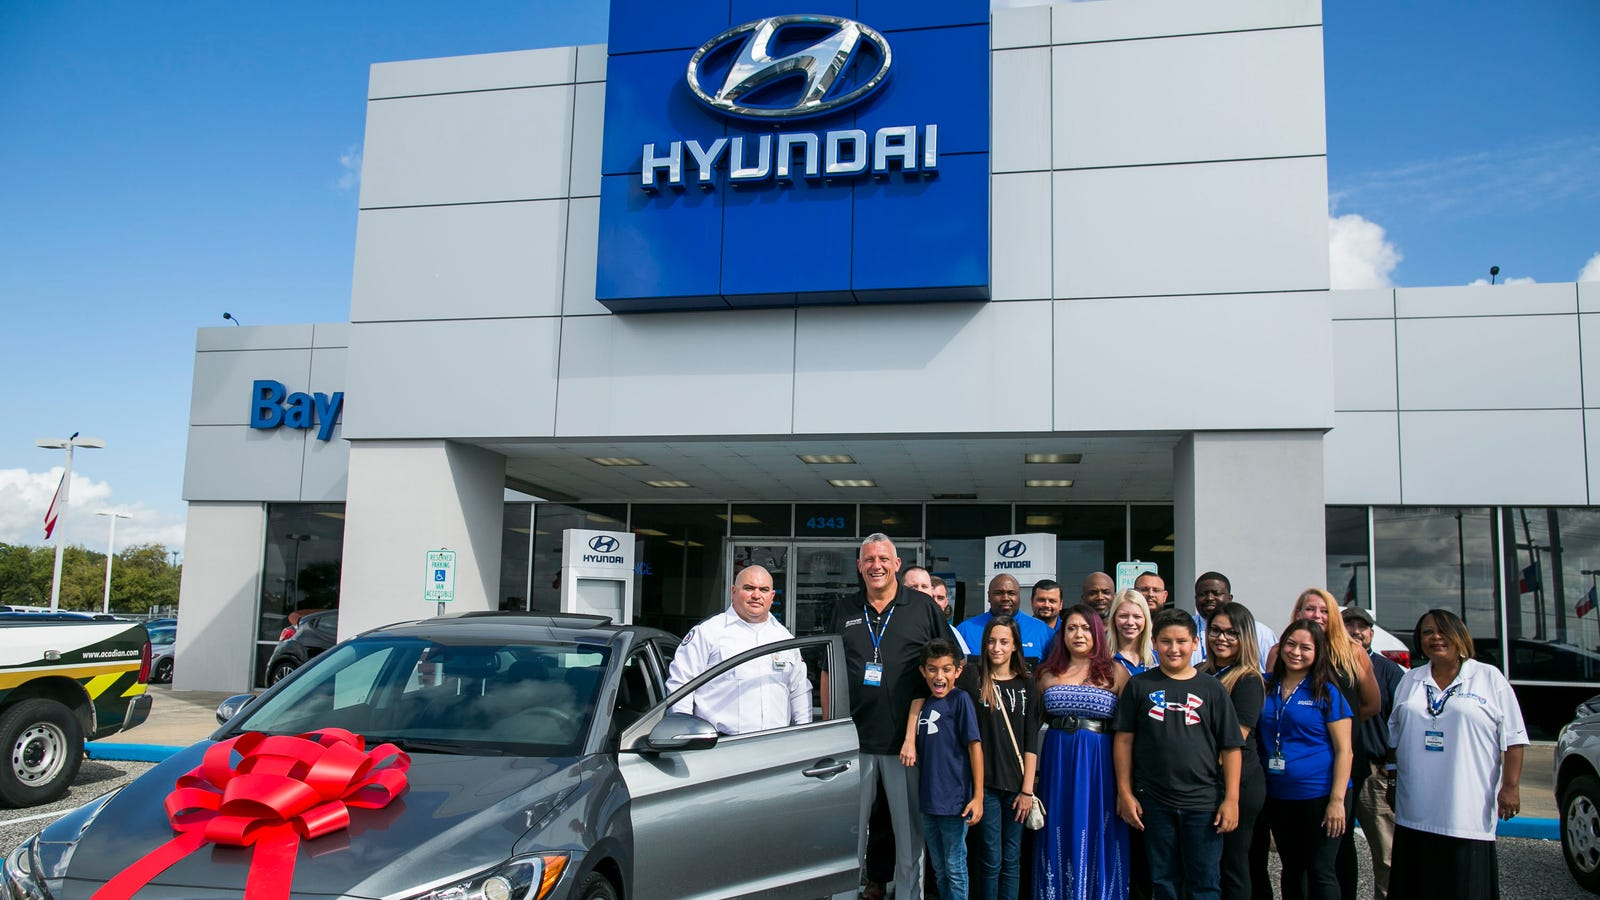 repentigny near in mascouche joliette sale franchise dealer dealers trust for dealerships media portfolios hyundai